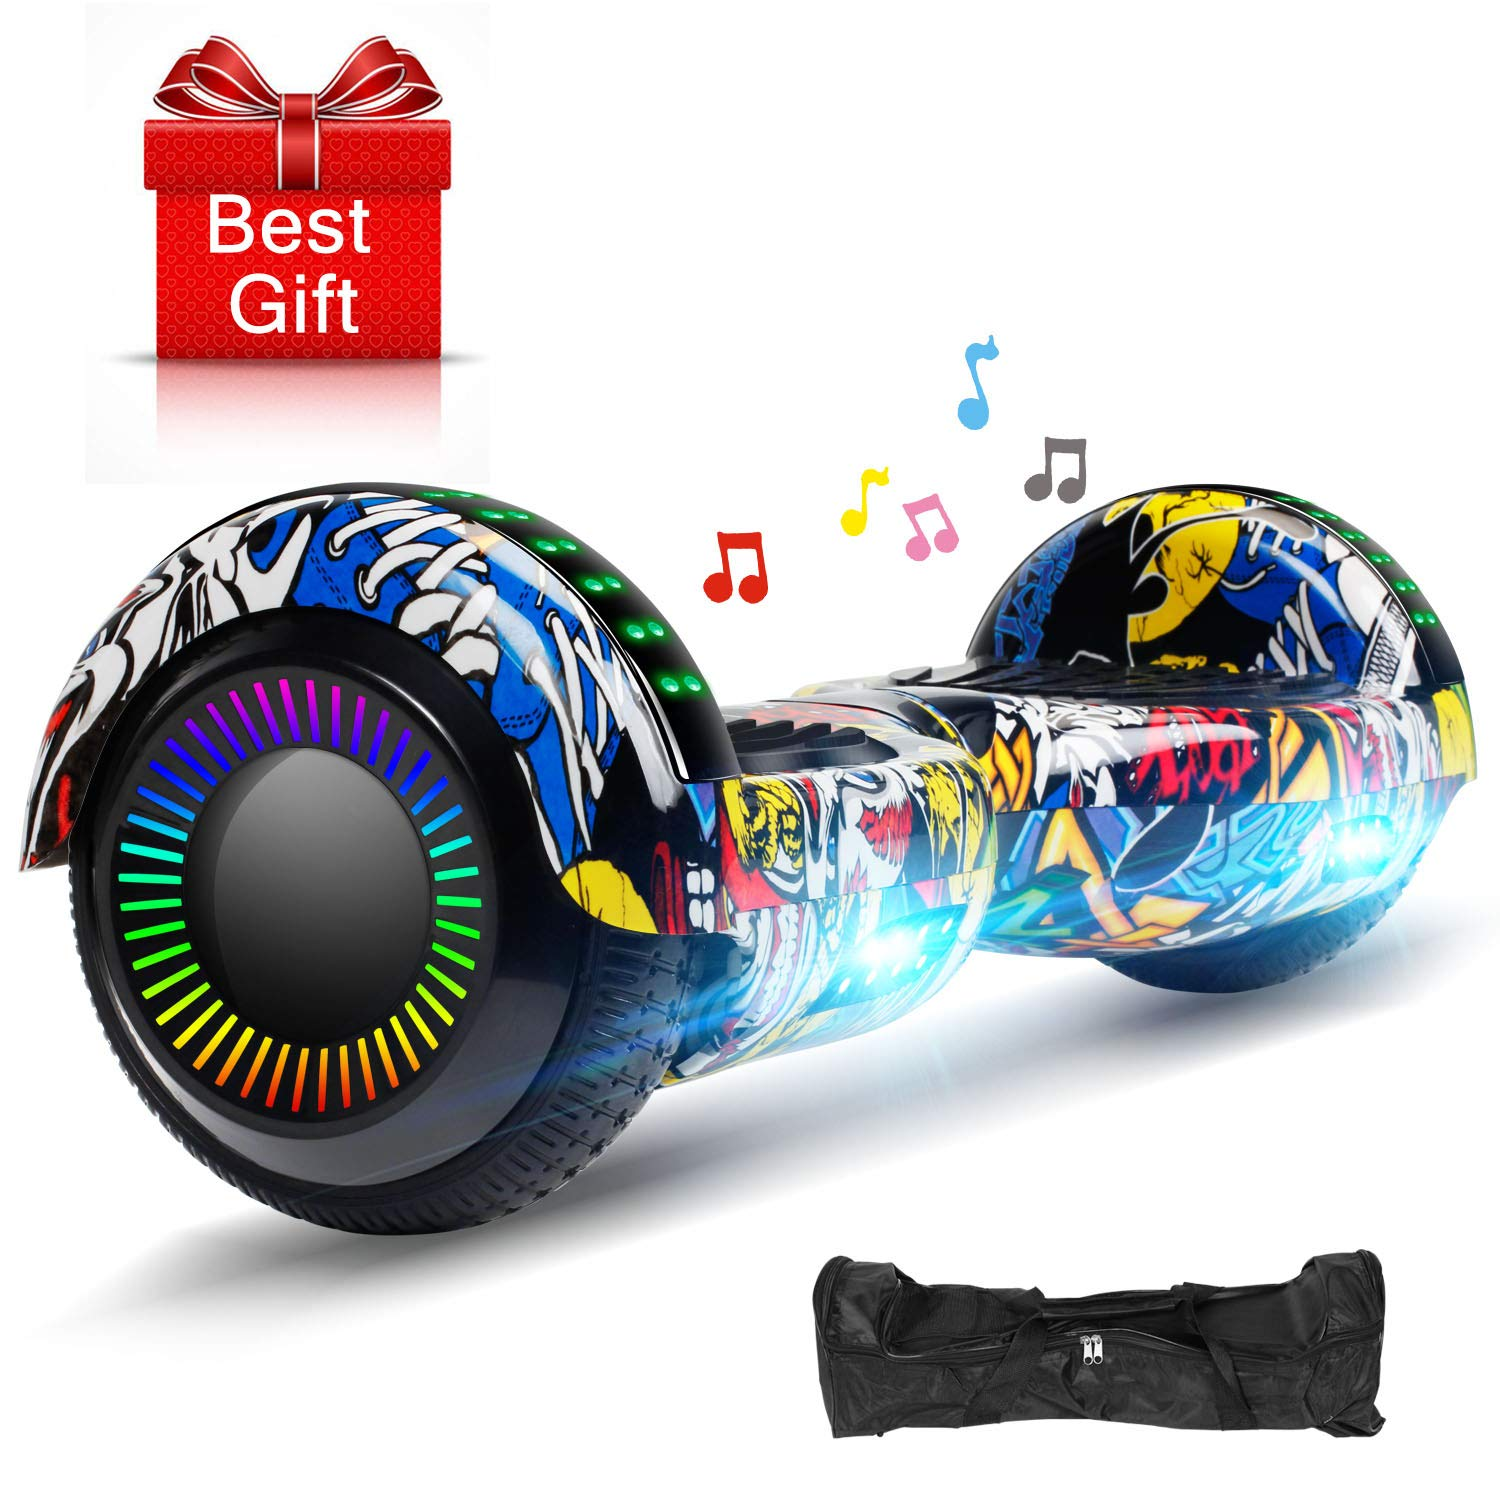 EPCTEK Hoverboards Smart Scooter Two-Wheel Self Balancing Electric Scooter for Kids Adult Gifts UL 2272 Certified with LED Wheels Lights Carry Bag Black